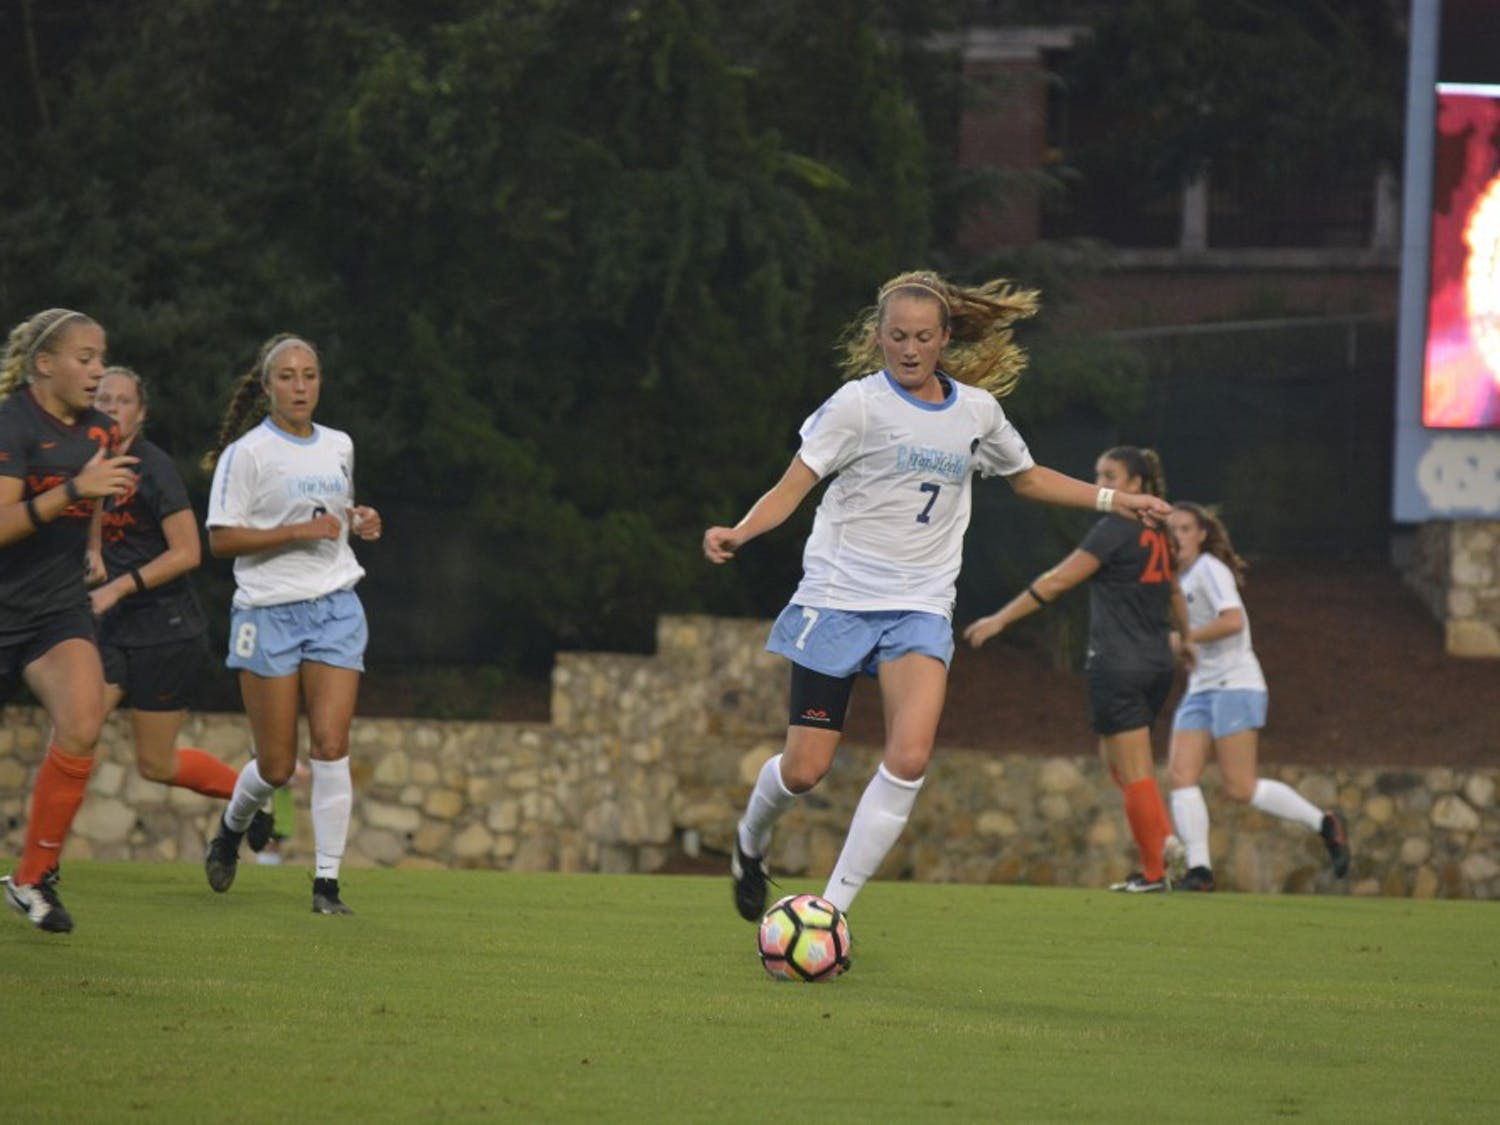 The UNC women's soccer team defeated Virginia Tech 3-0 Thursday evening at Fetzer Field.